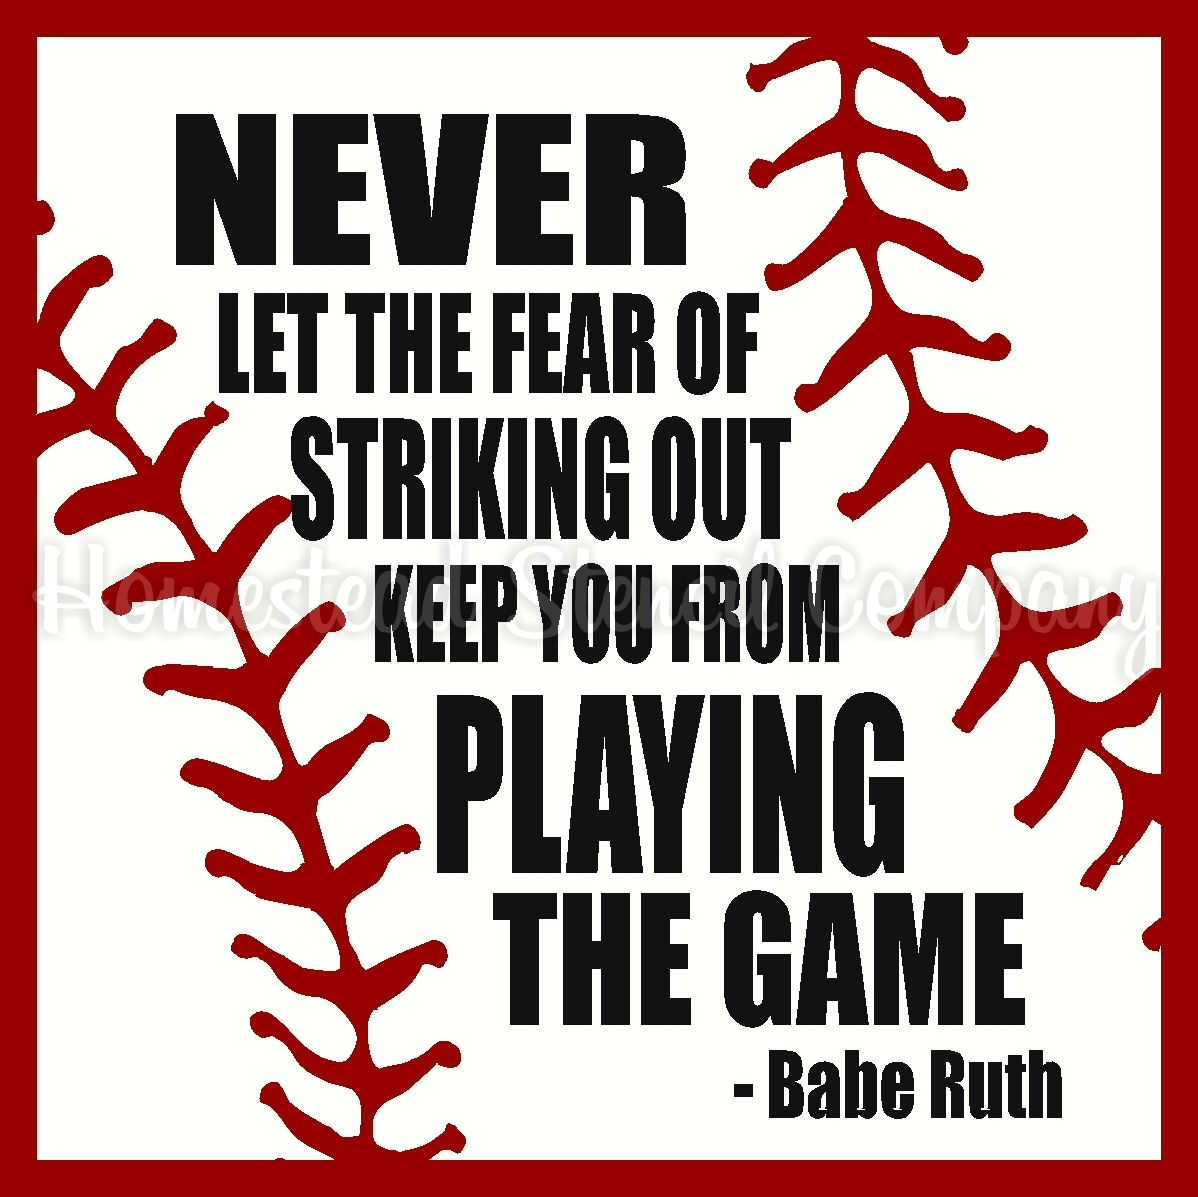 STENCIL ITEM 6280 NEVER LET THE FEAR OF STRIKING OUT KEEP